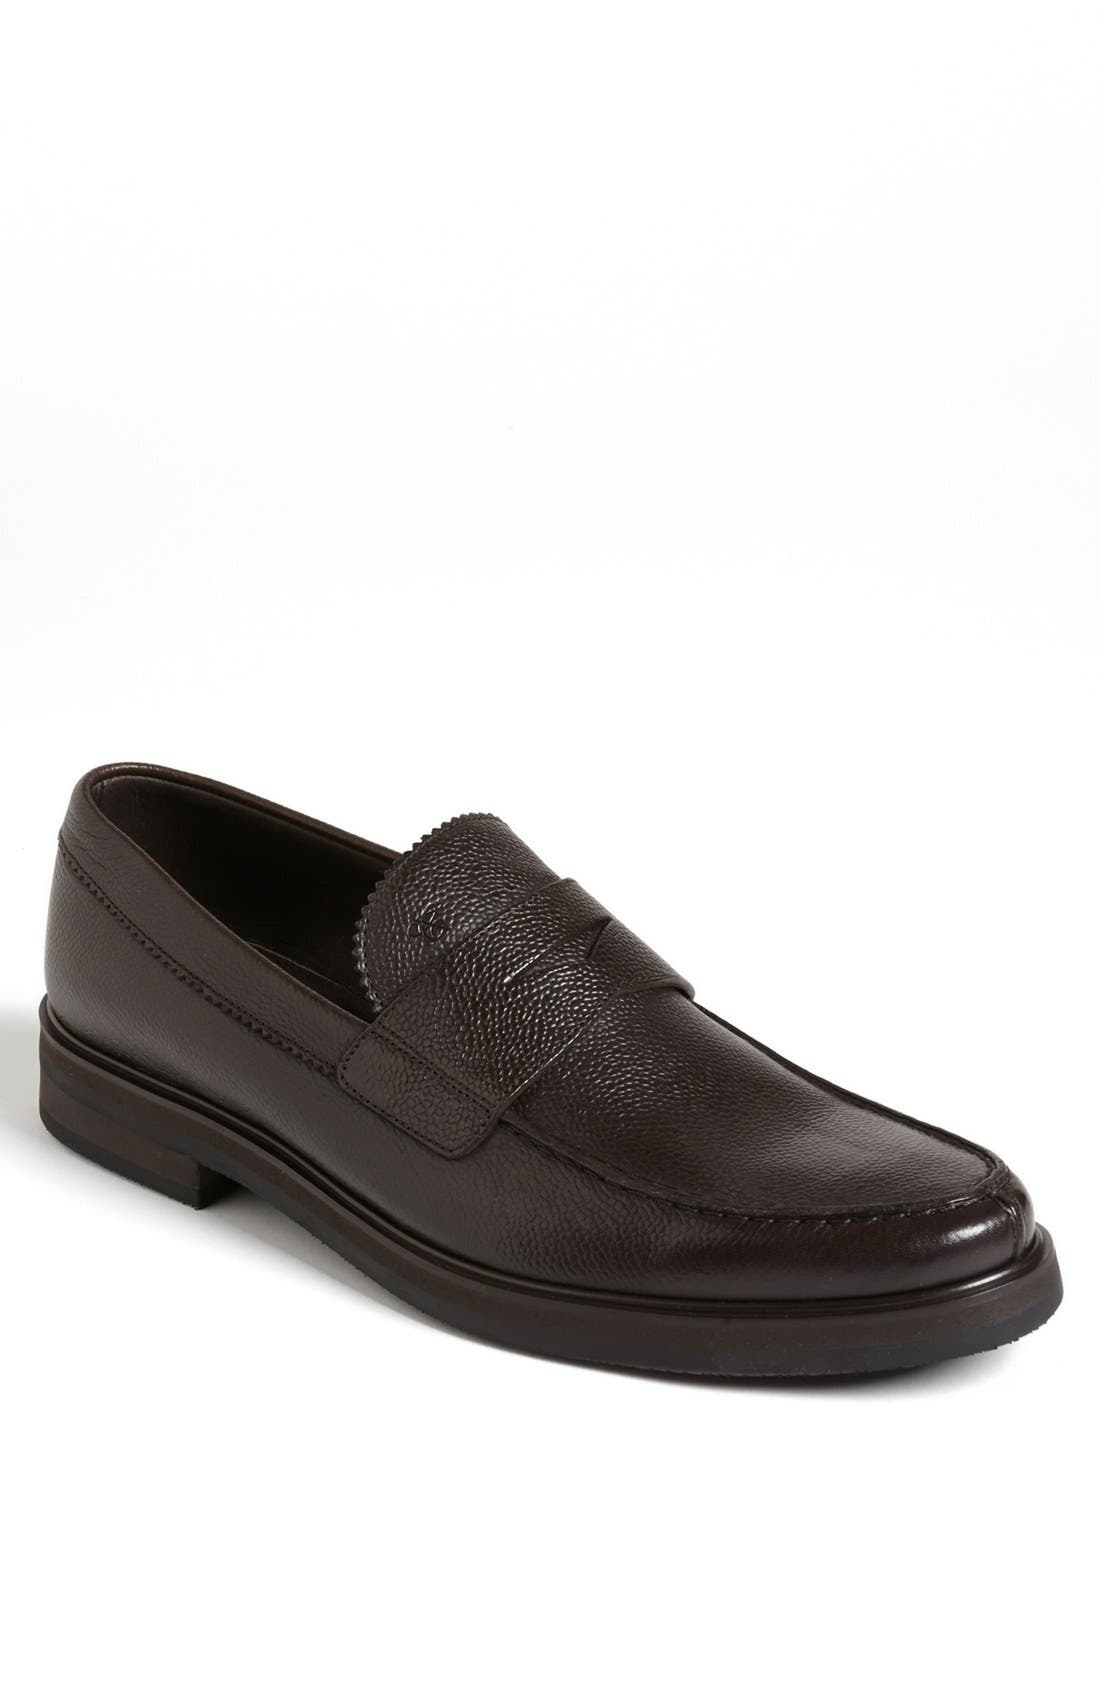 Main Image - Canali Penny Loafer (Men)